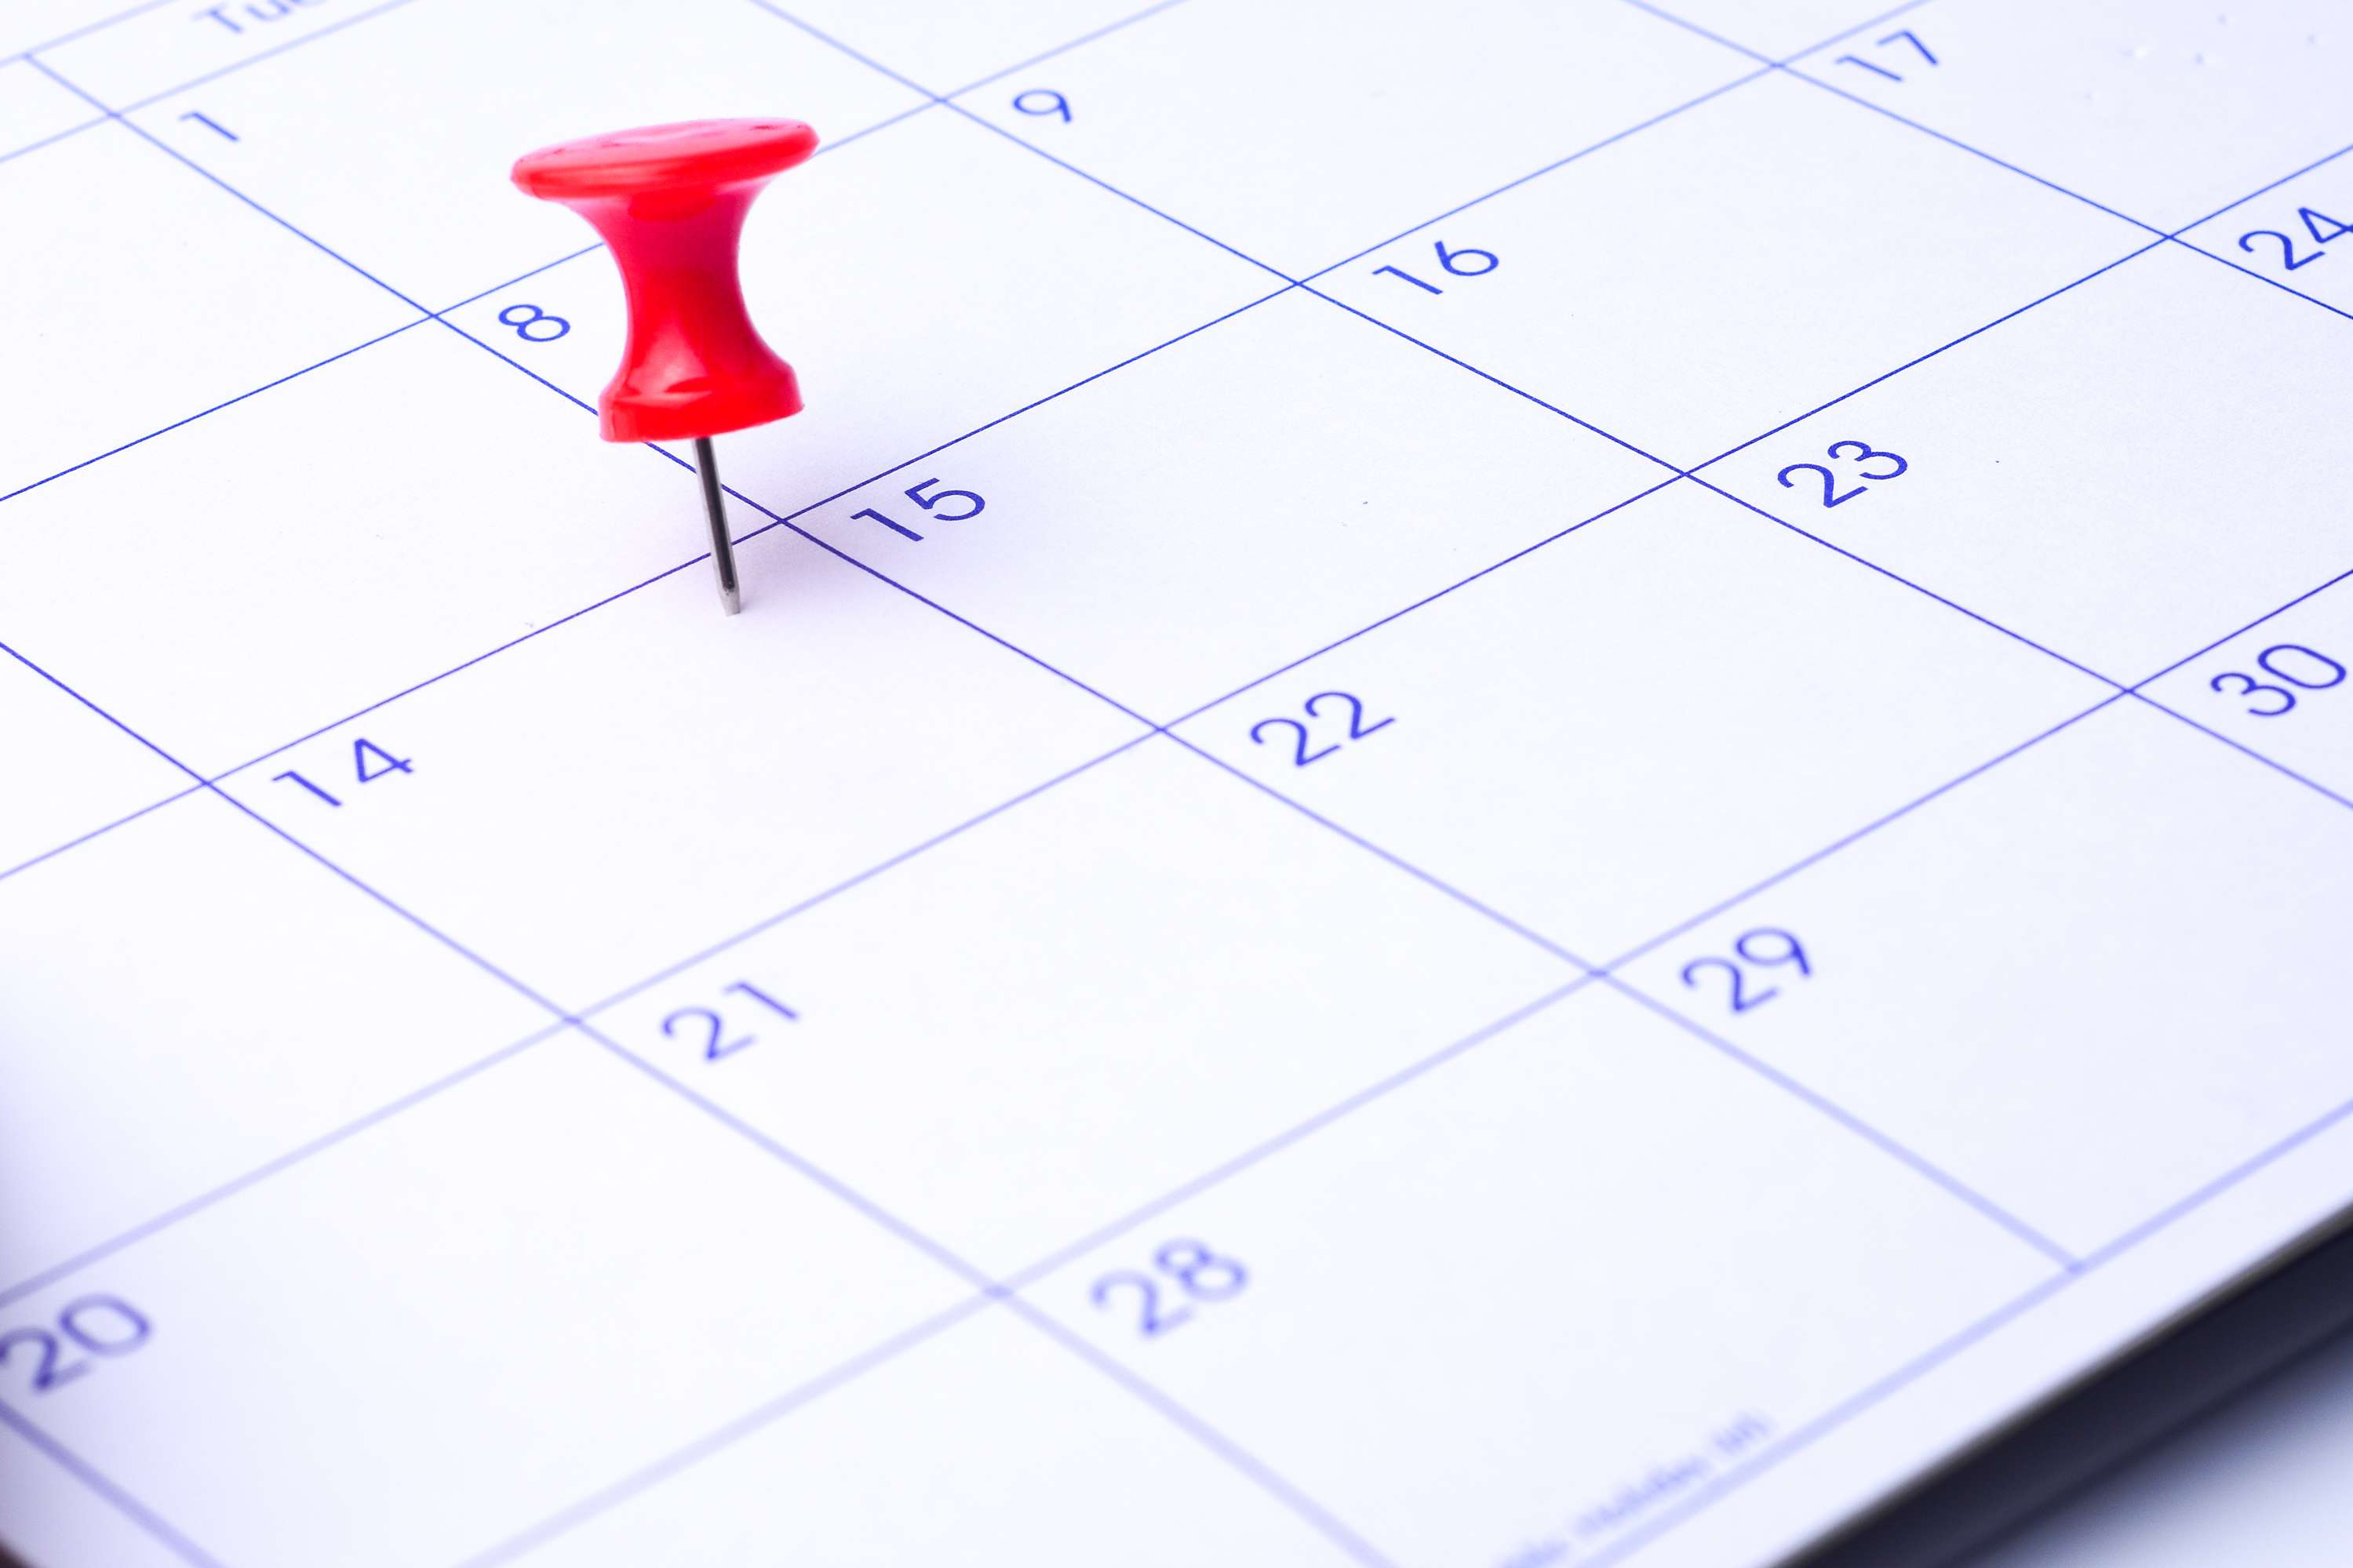 Close-Up High Angle View Of Thumbtack On Calendar Date